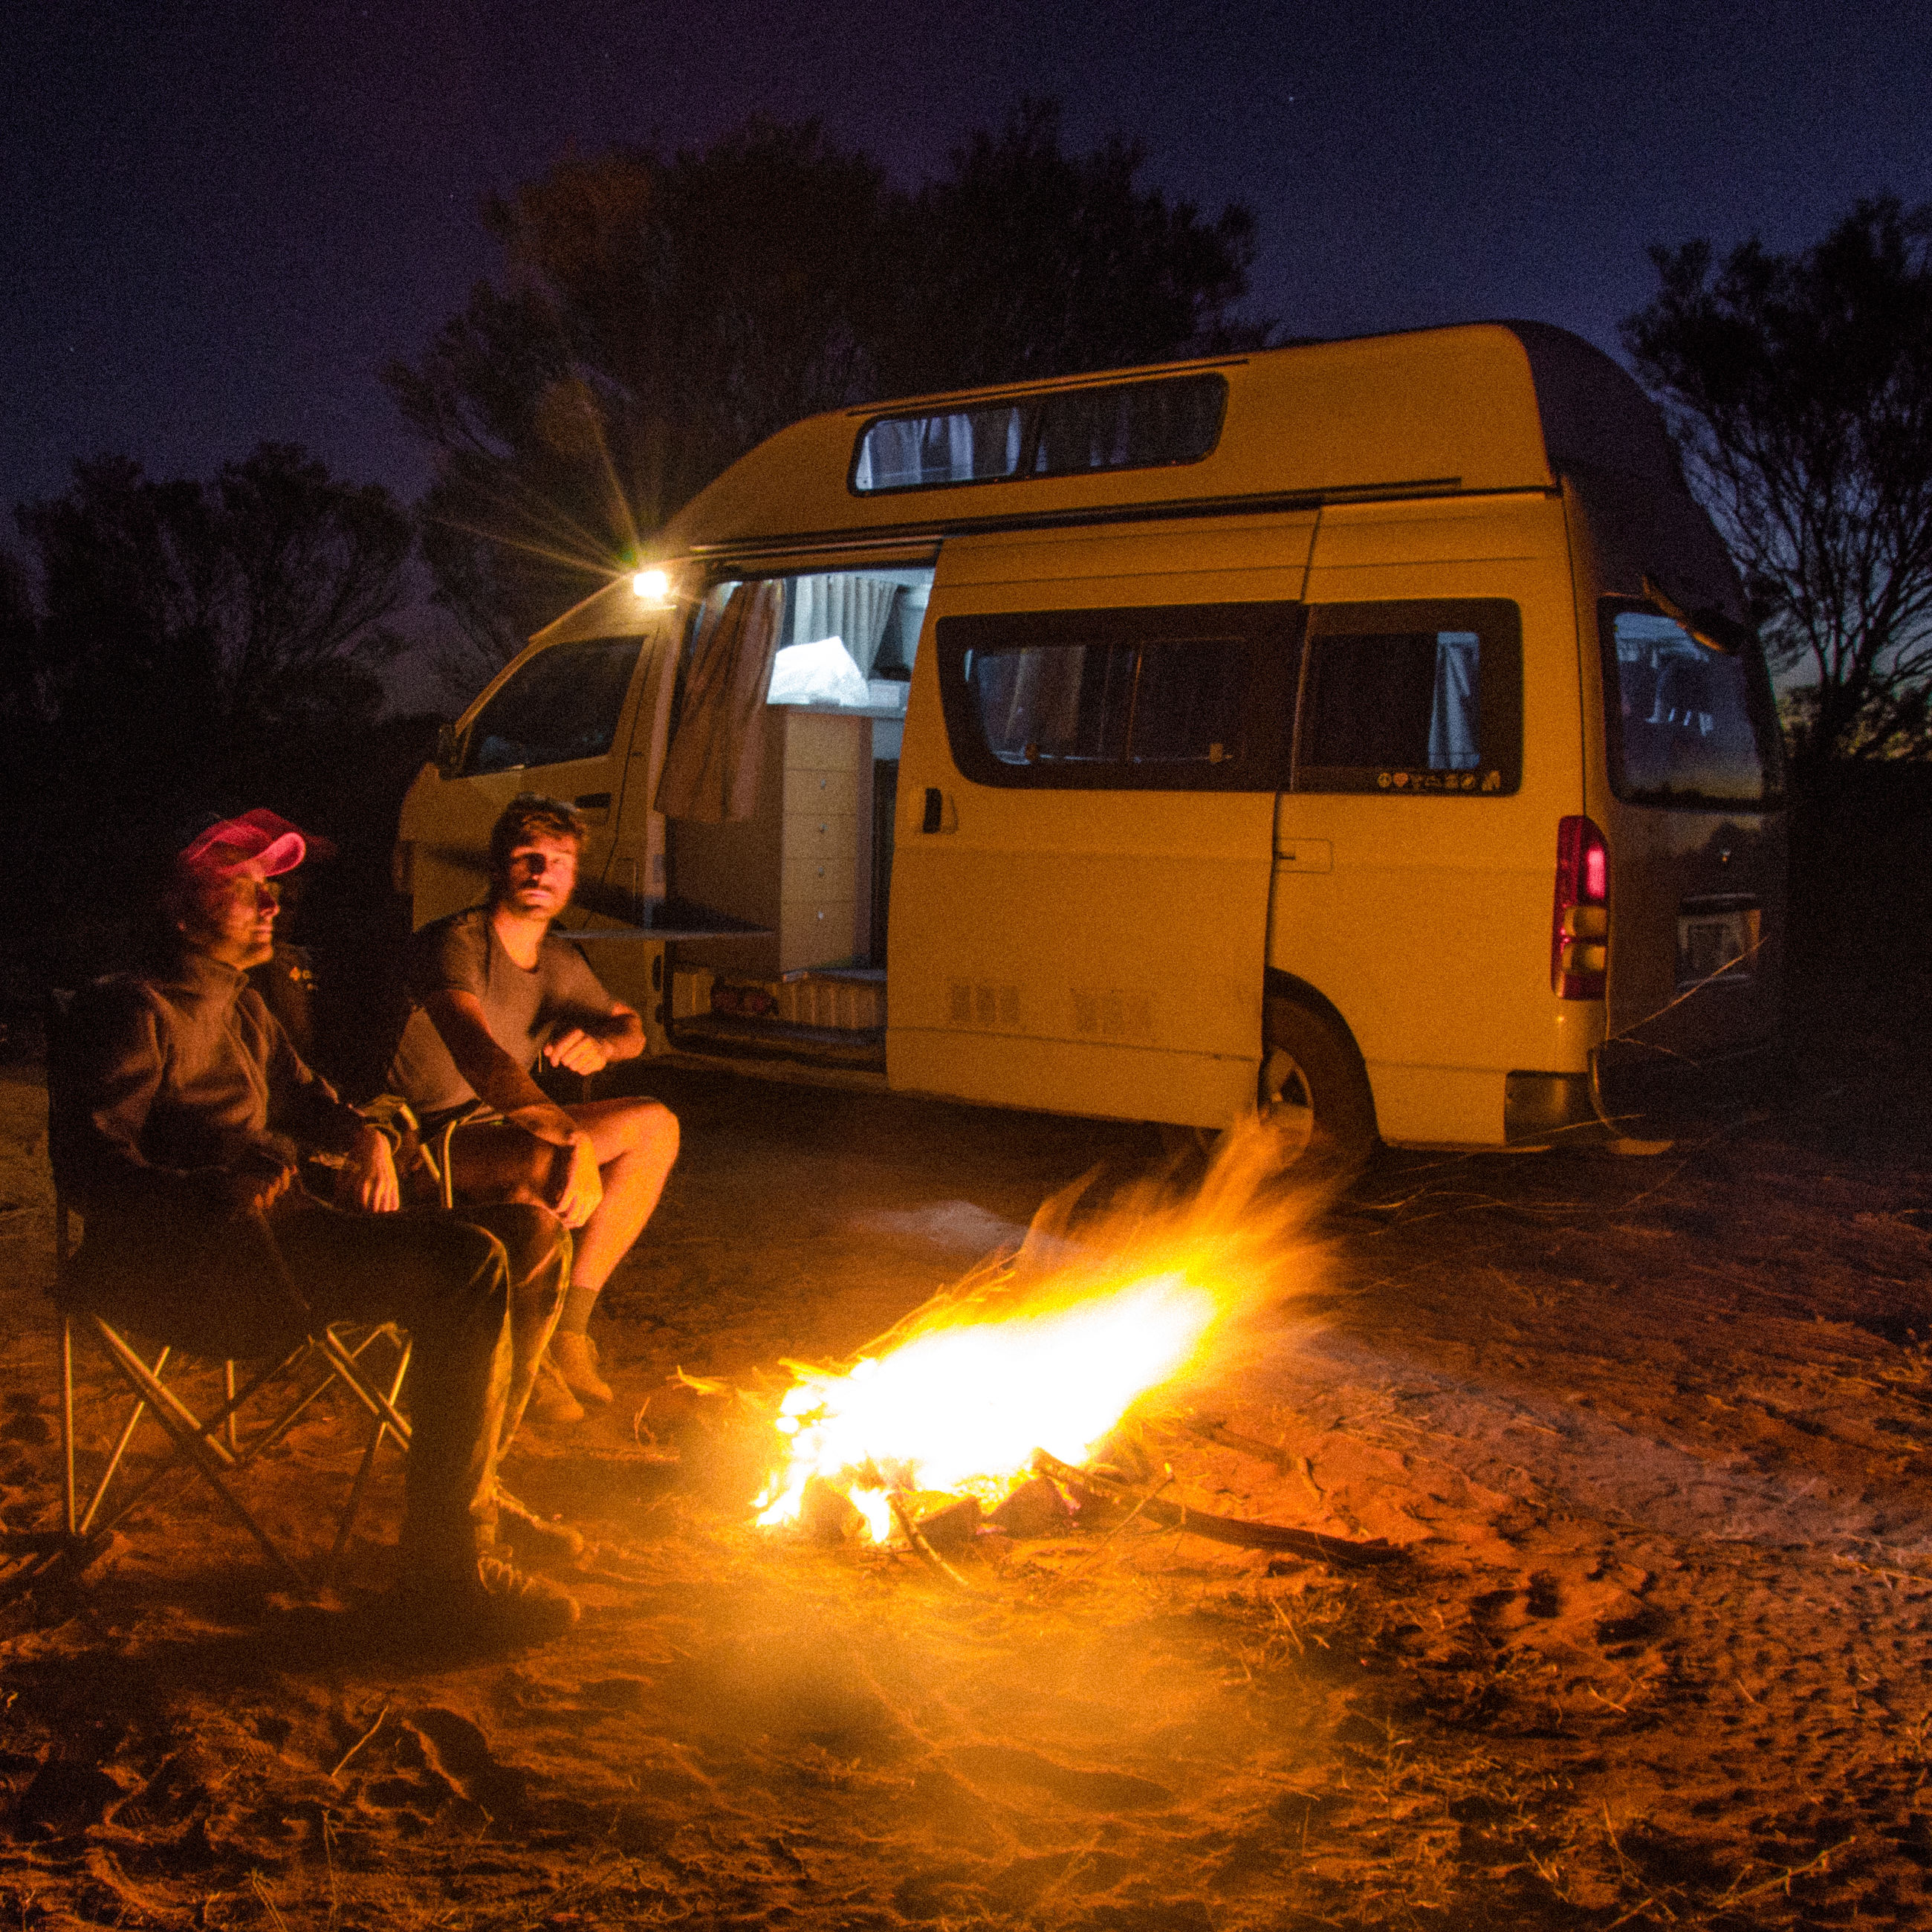 flame, heat - temperature, mode of transportation, fire, burning, night, nature, fire - natural phenomenon, two people, men, real people, transportation, land vehicle, people, illuminated, adult, camping, bonfire, women, young adult, campfire, outdoors